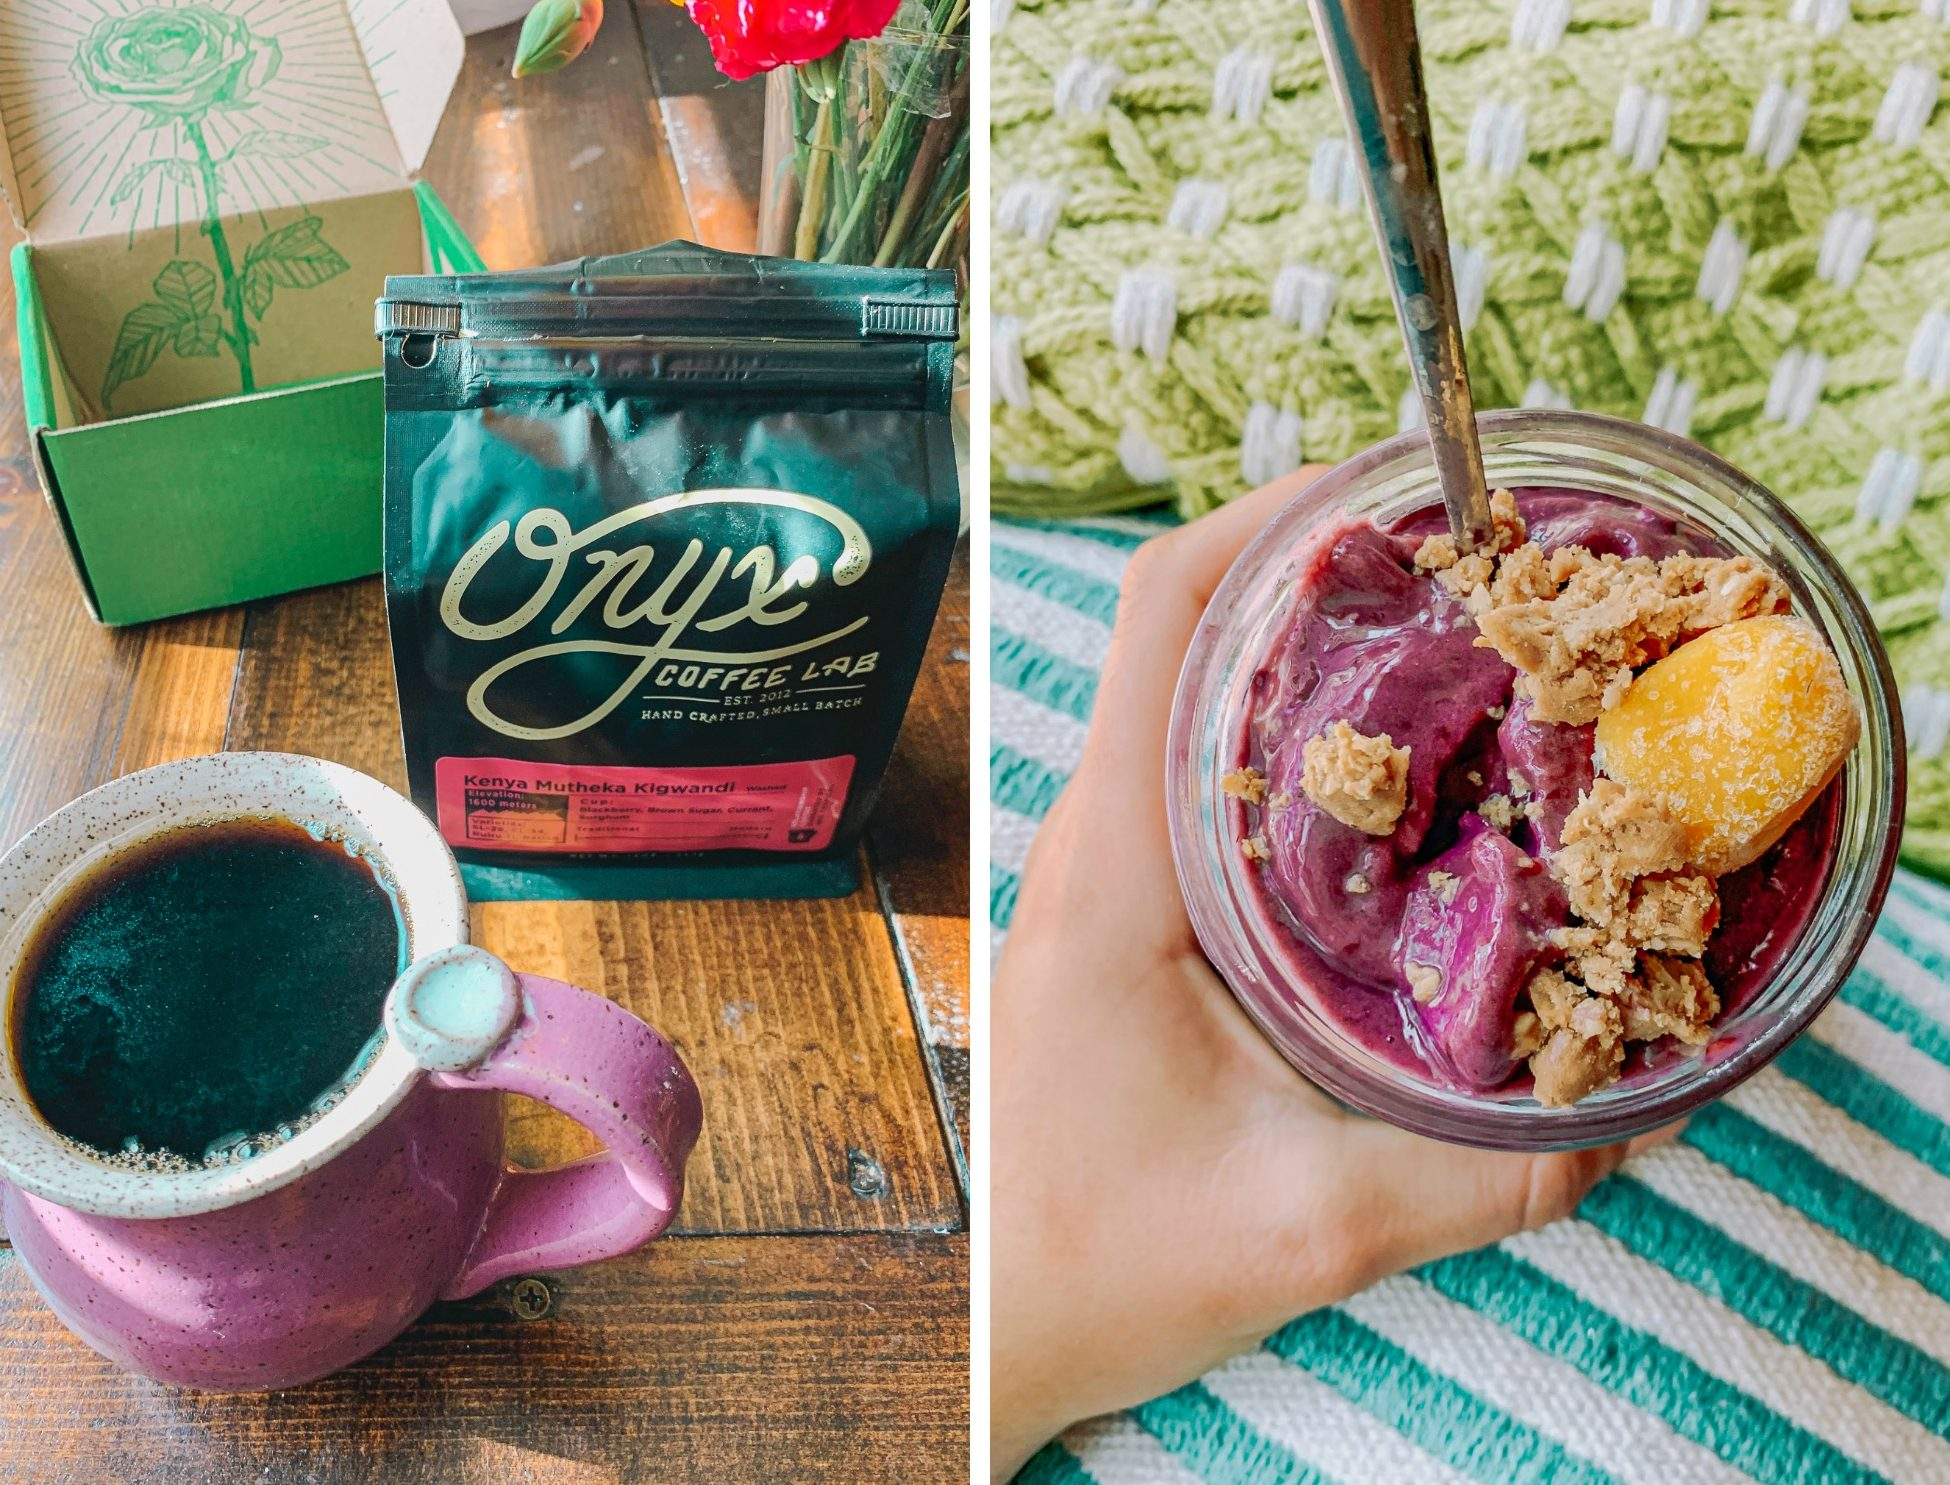 onyx coffee simply taralynn trying reviews roasters coffee in the morning drip coffee healthy smoothie, gluten free, dairy free, plant based, mango, blackberries, almond milk, granola, peanut butter